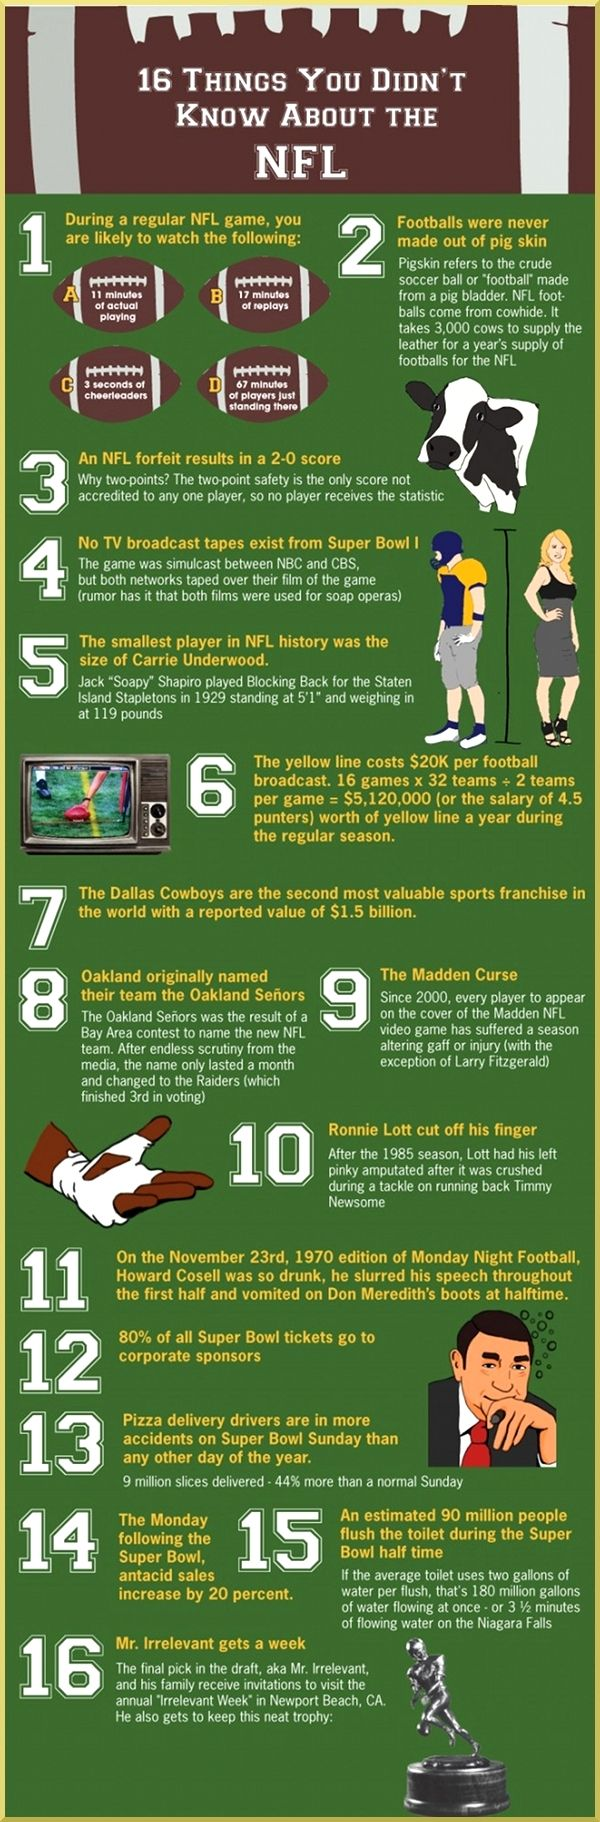 For football season, 11 fun facts about the NFL @ Pinfographics